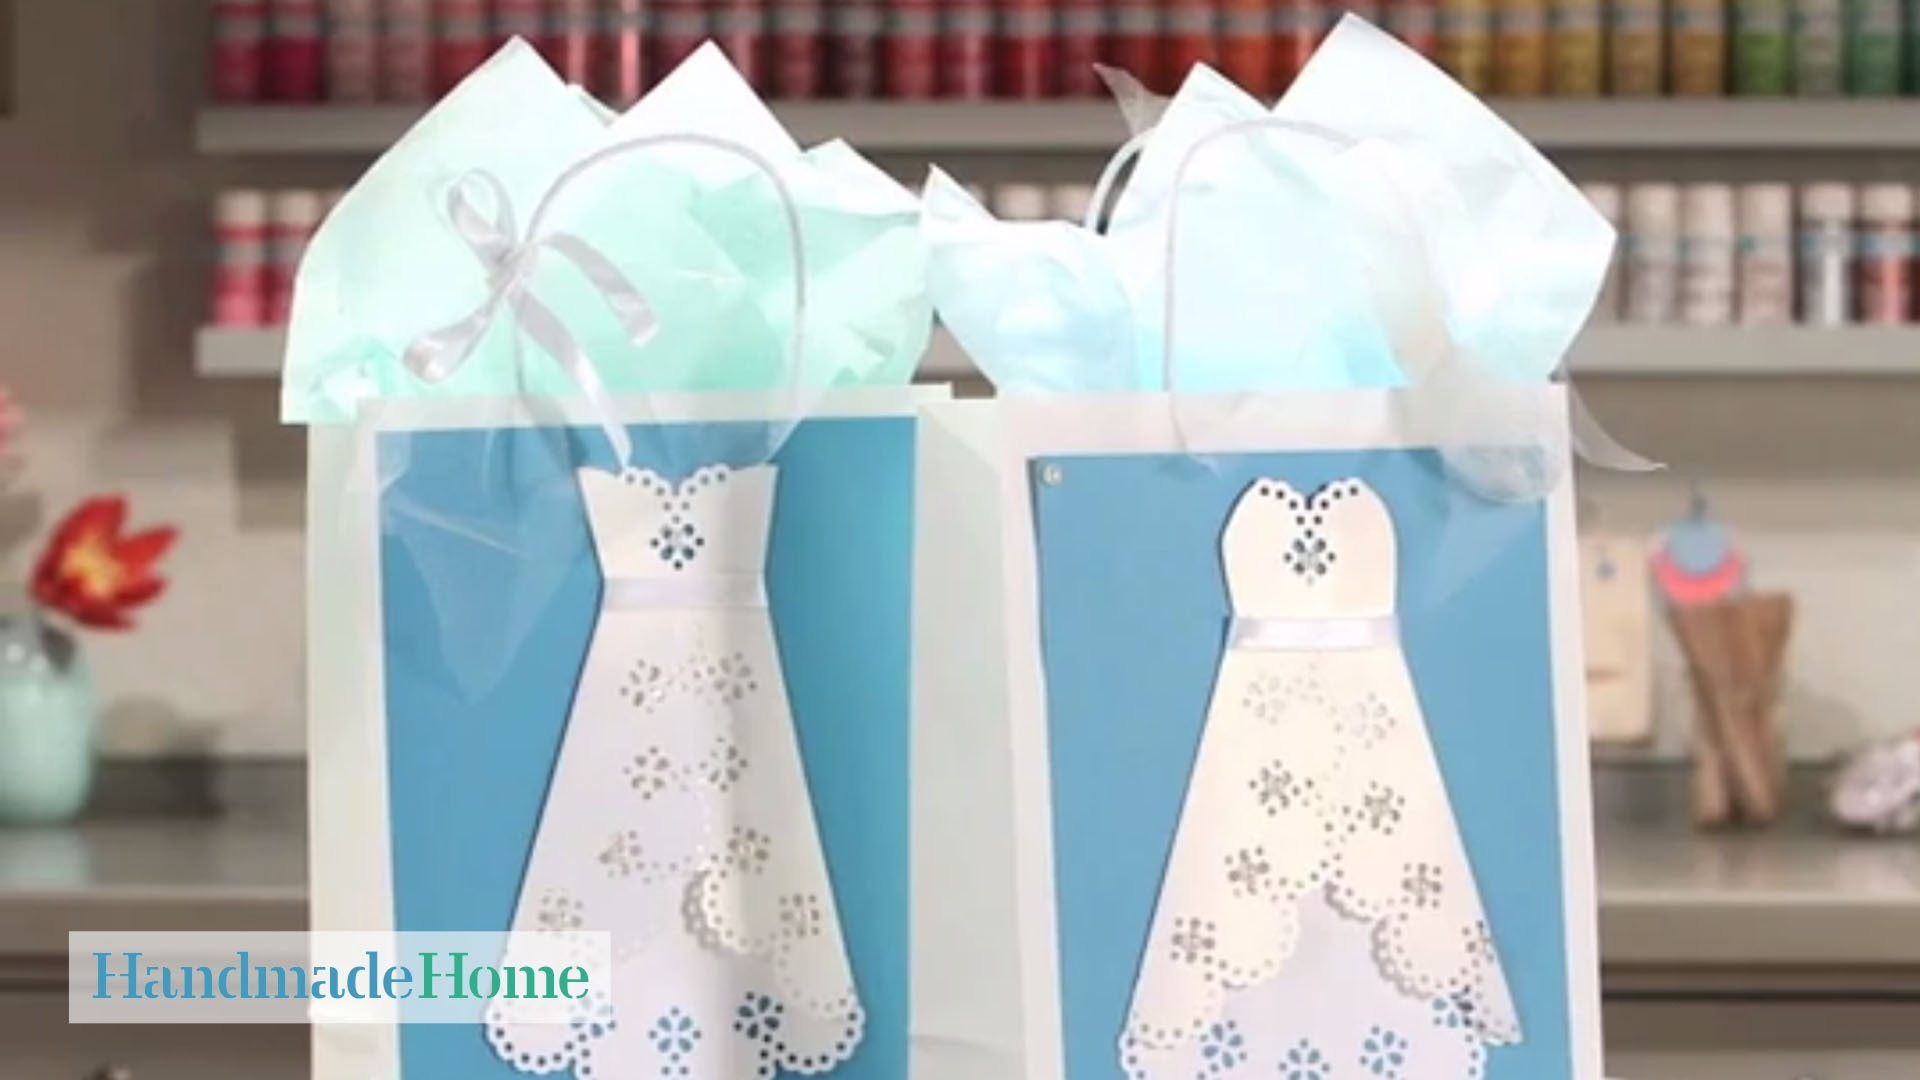 Wedding Dress Gift Bags - Handmade Home - Martha Stewart